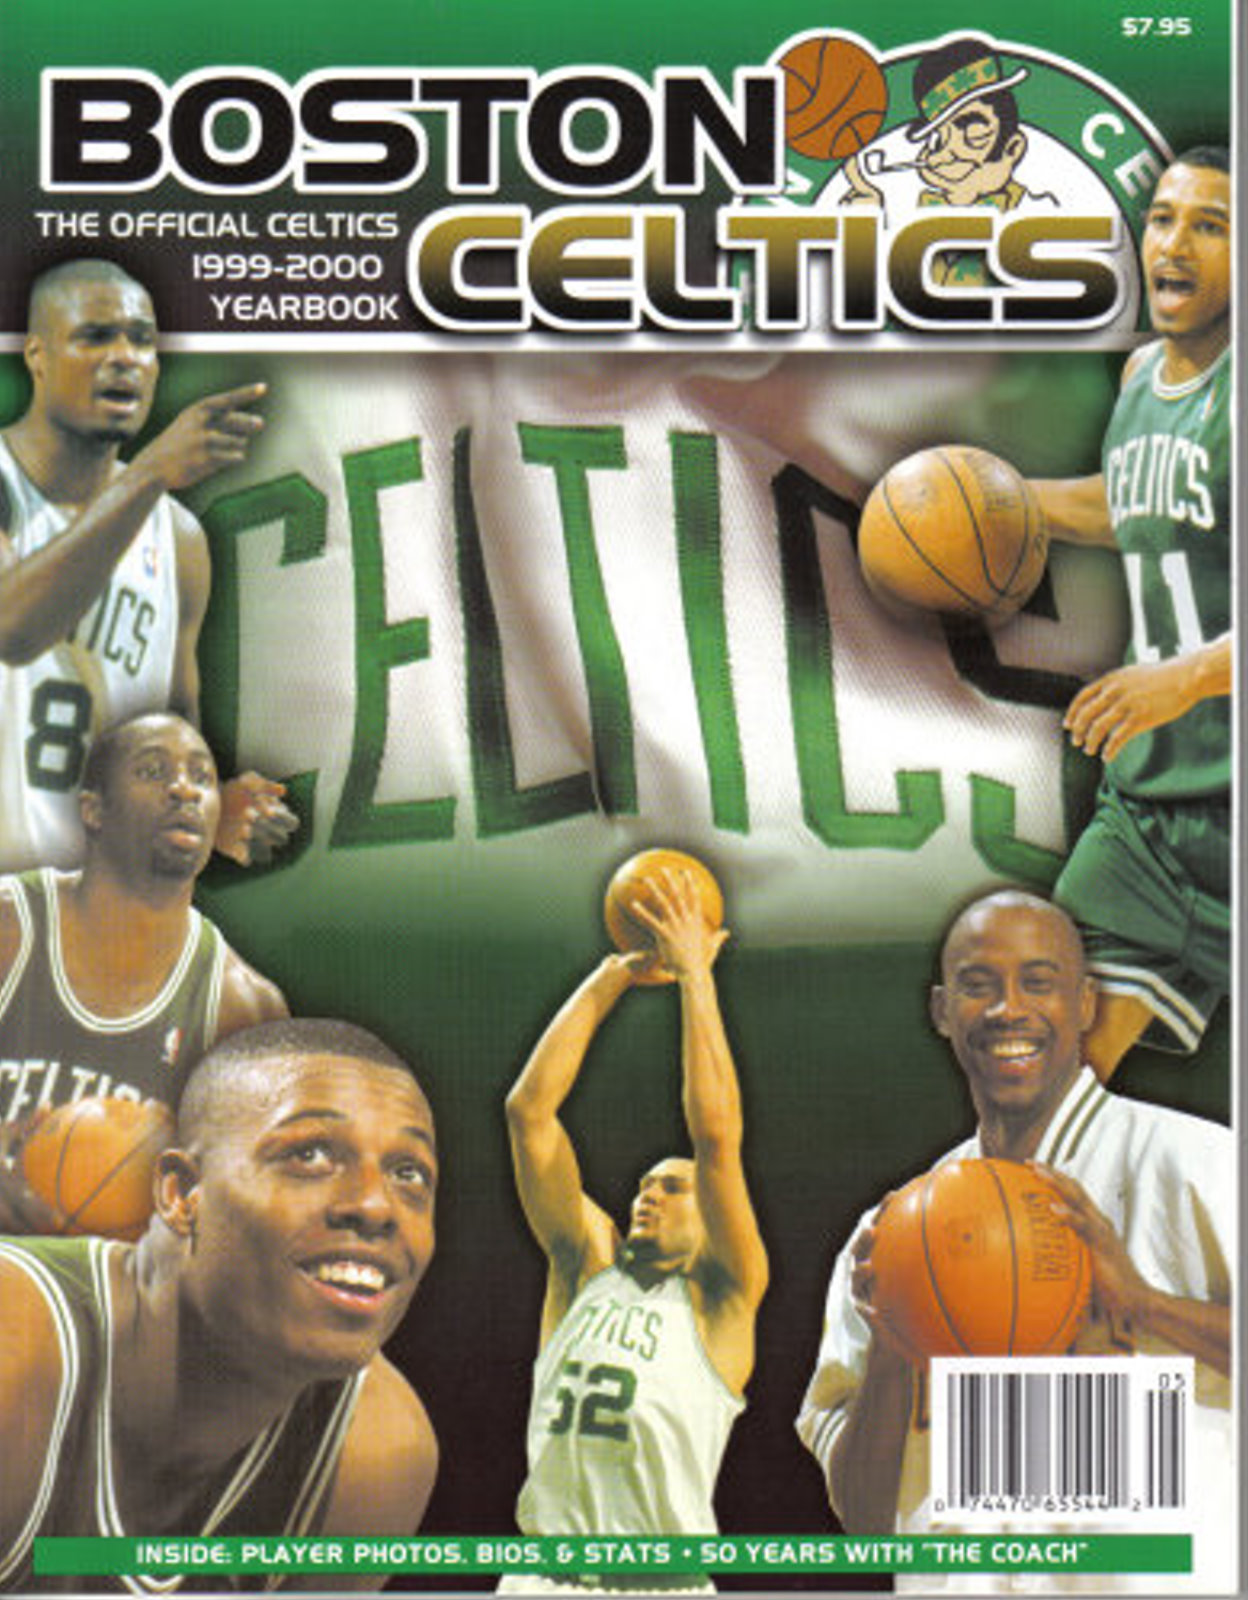 Boston Celtics, The Official Celtics 1999-2000 Yearbook